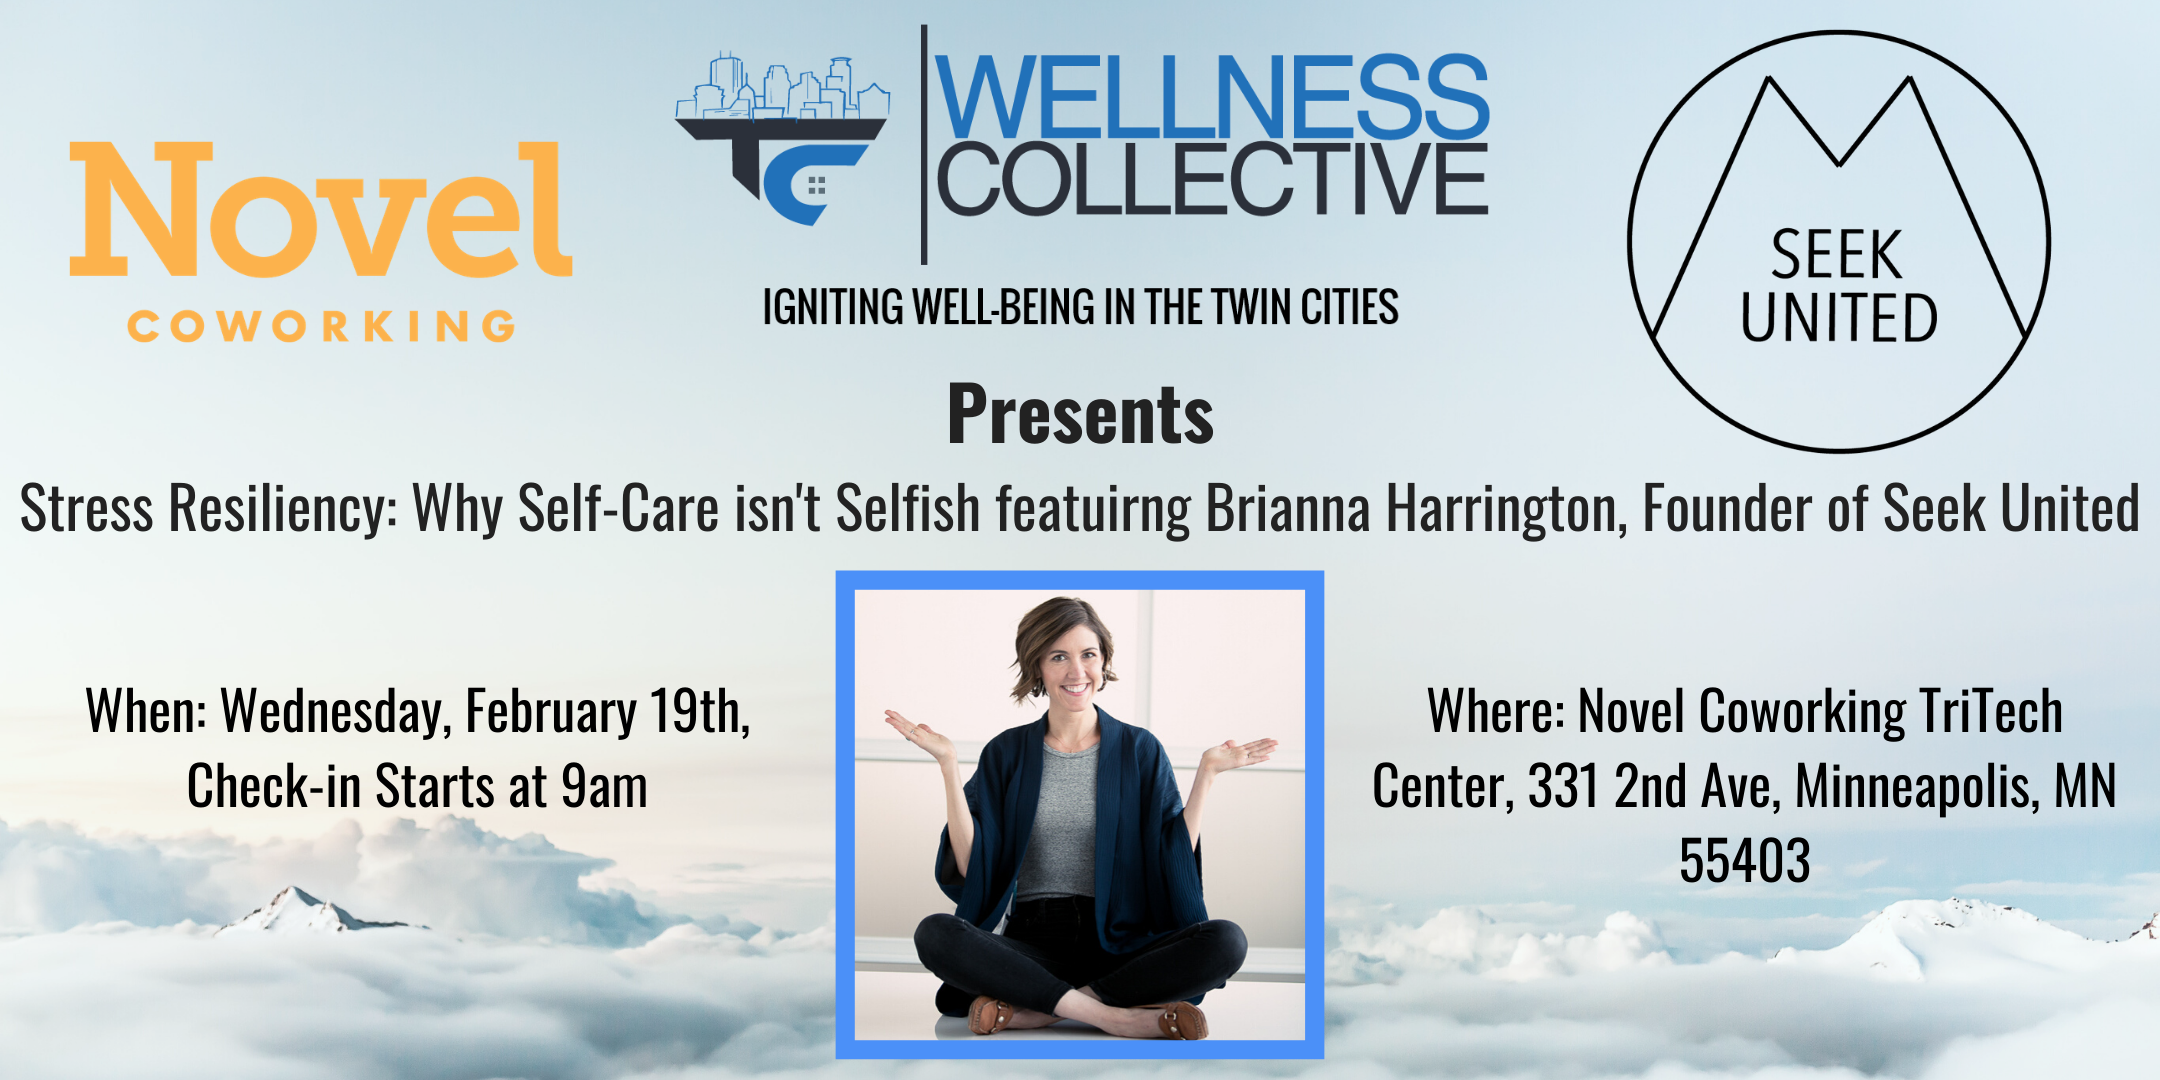 The Twin Cities Wellness Collective™ Presents Stress Resiliency: Why Self-Care isn't Selfish featuring Brianna Harrington